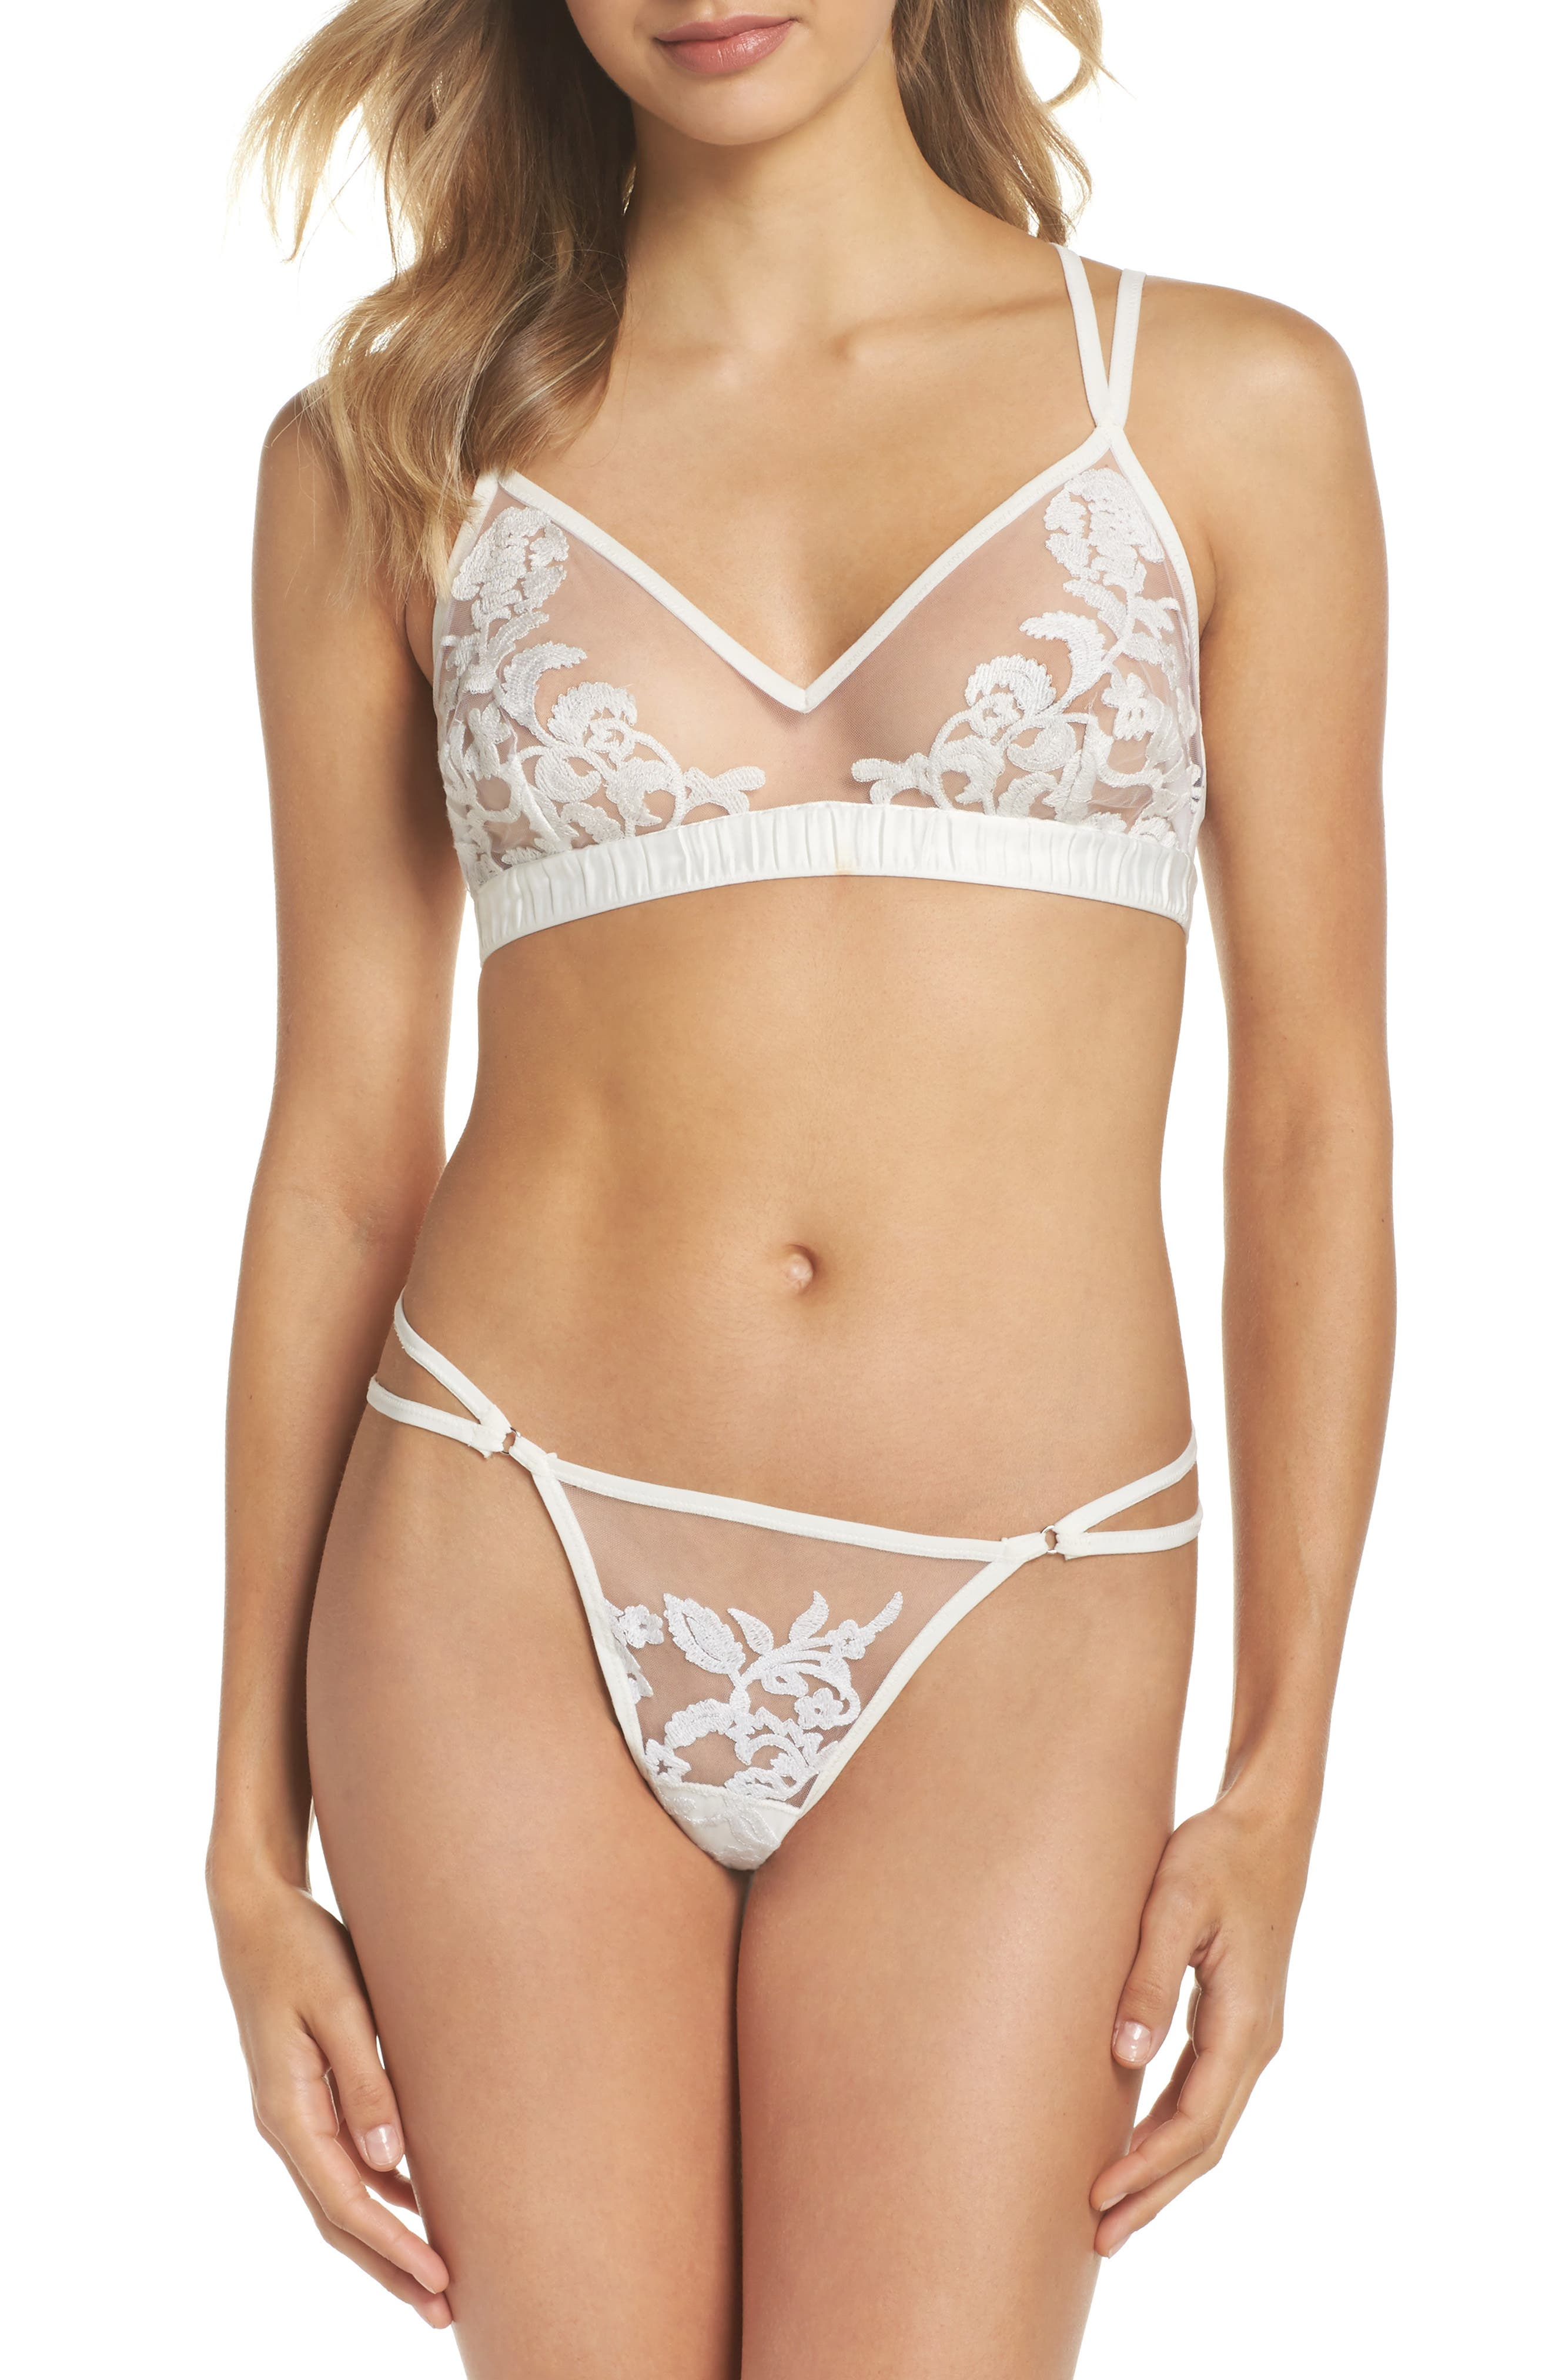 Thistle & Spire Cornelia Strappy Bralette,                             Alternate thumbnail 7, color,                             900